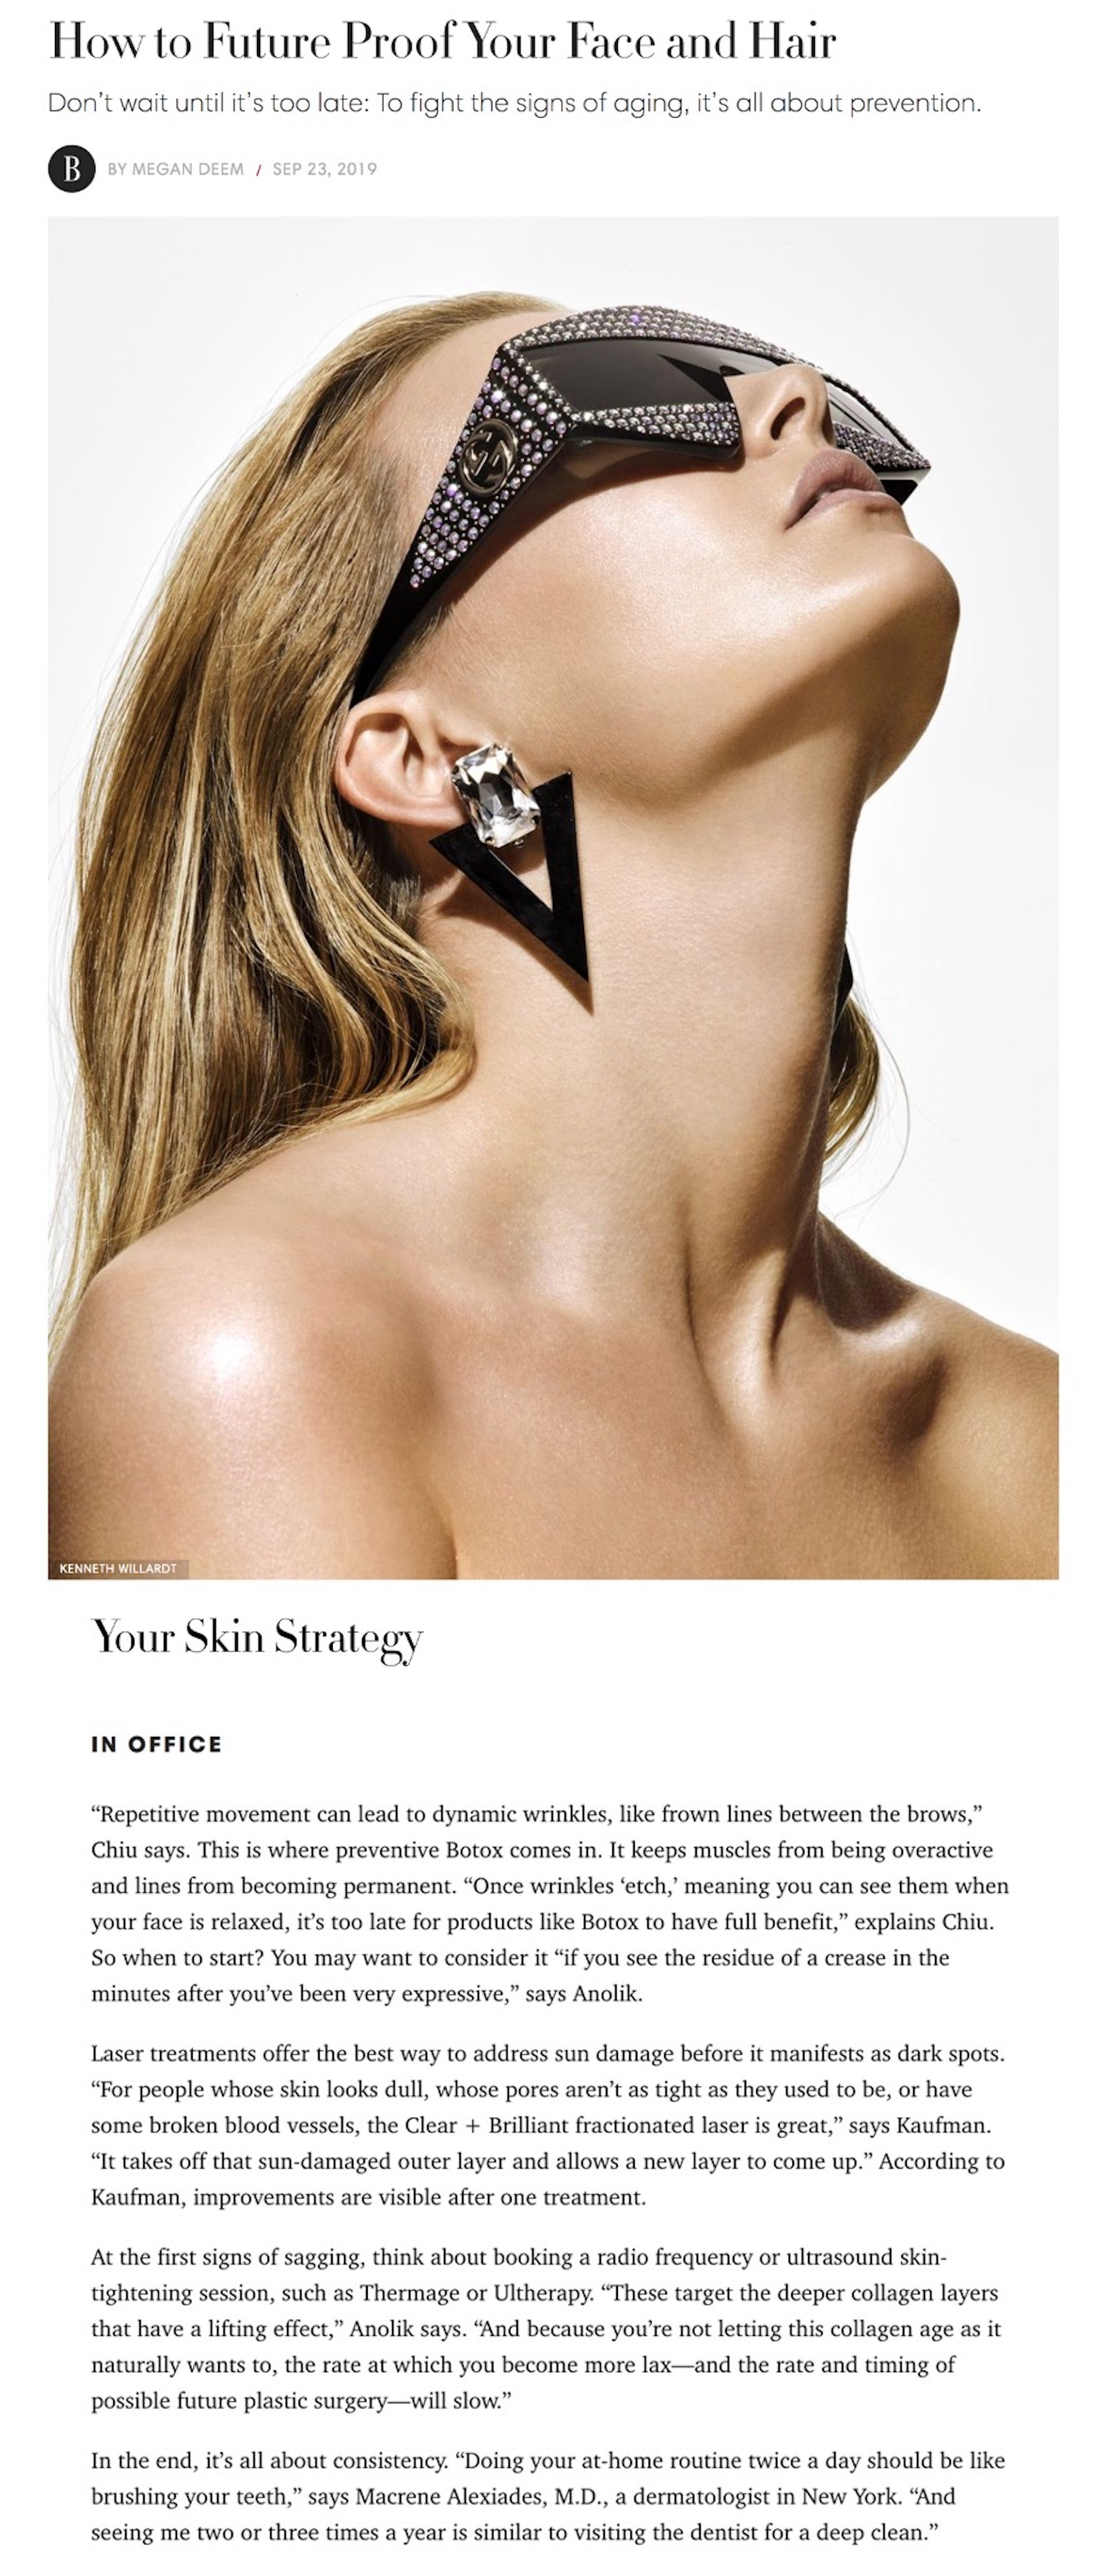 September 2019 - Harper's Bazaar: How to Future Proof Your Face and Hair